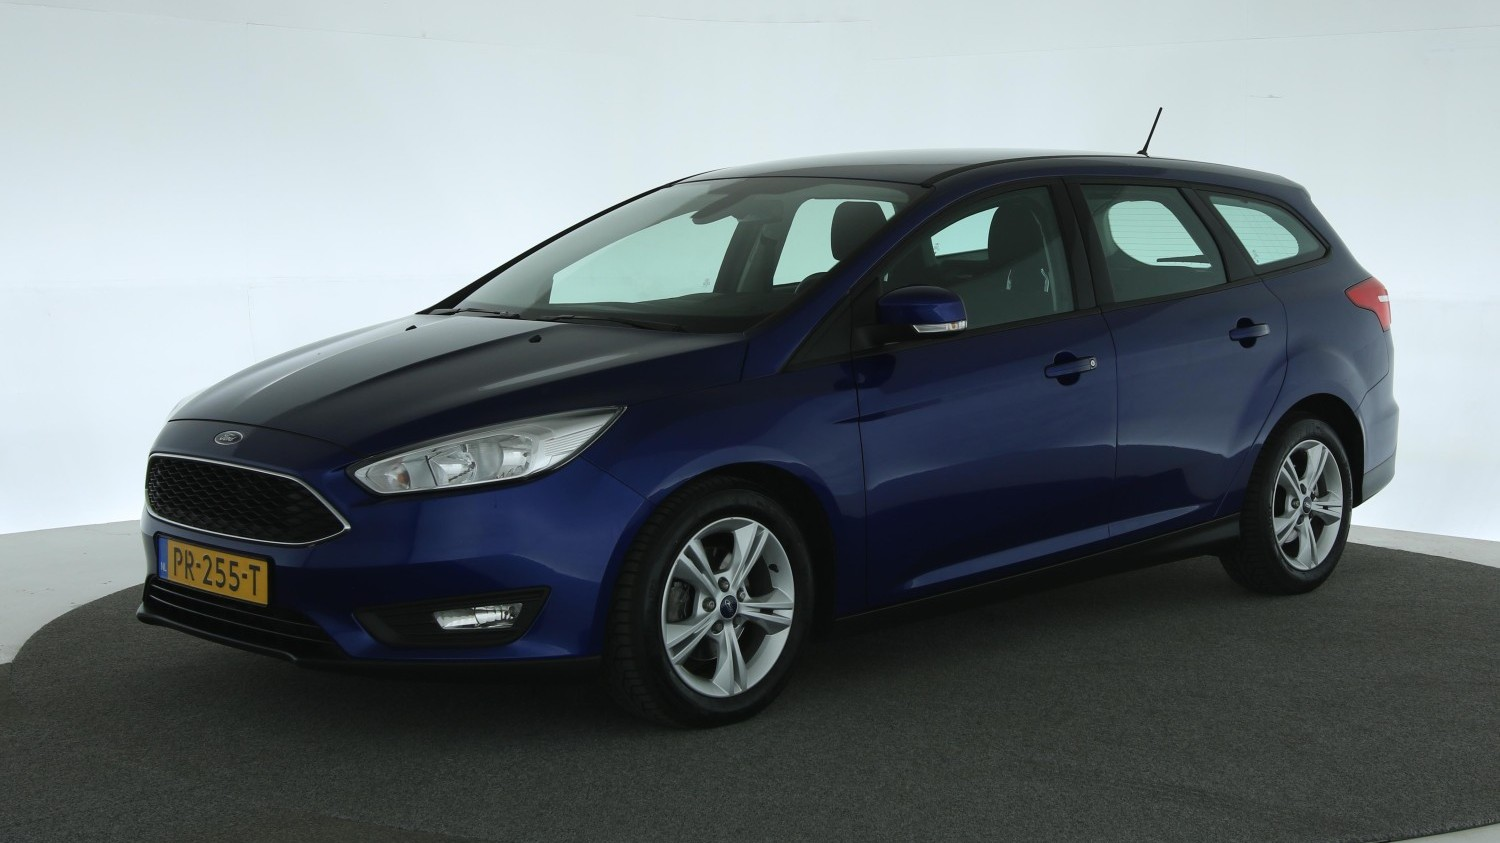 Ford Focus Station 2017 PR-255-T 1